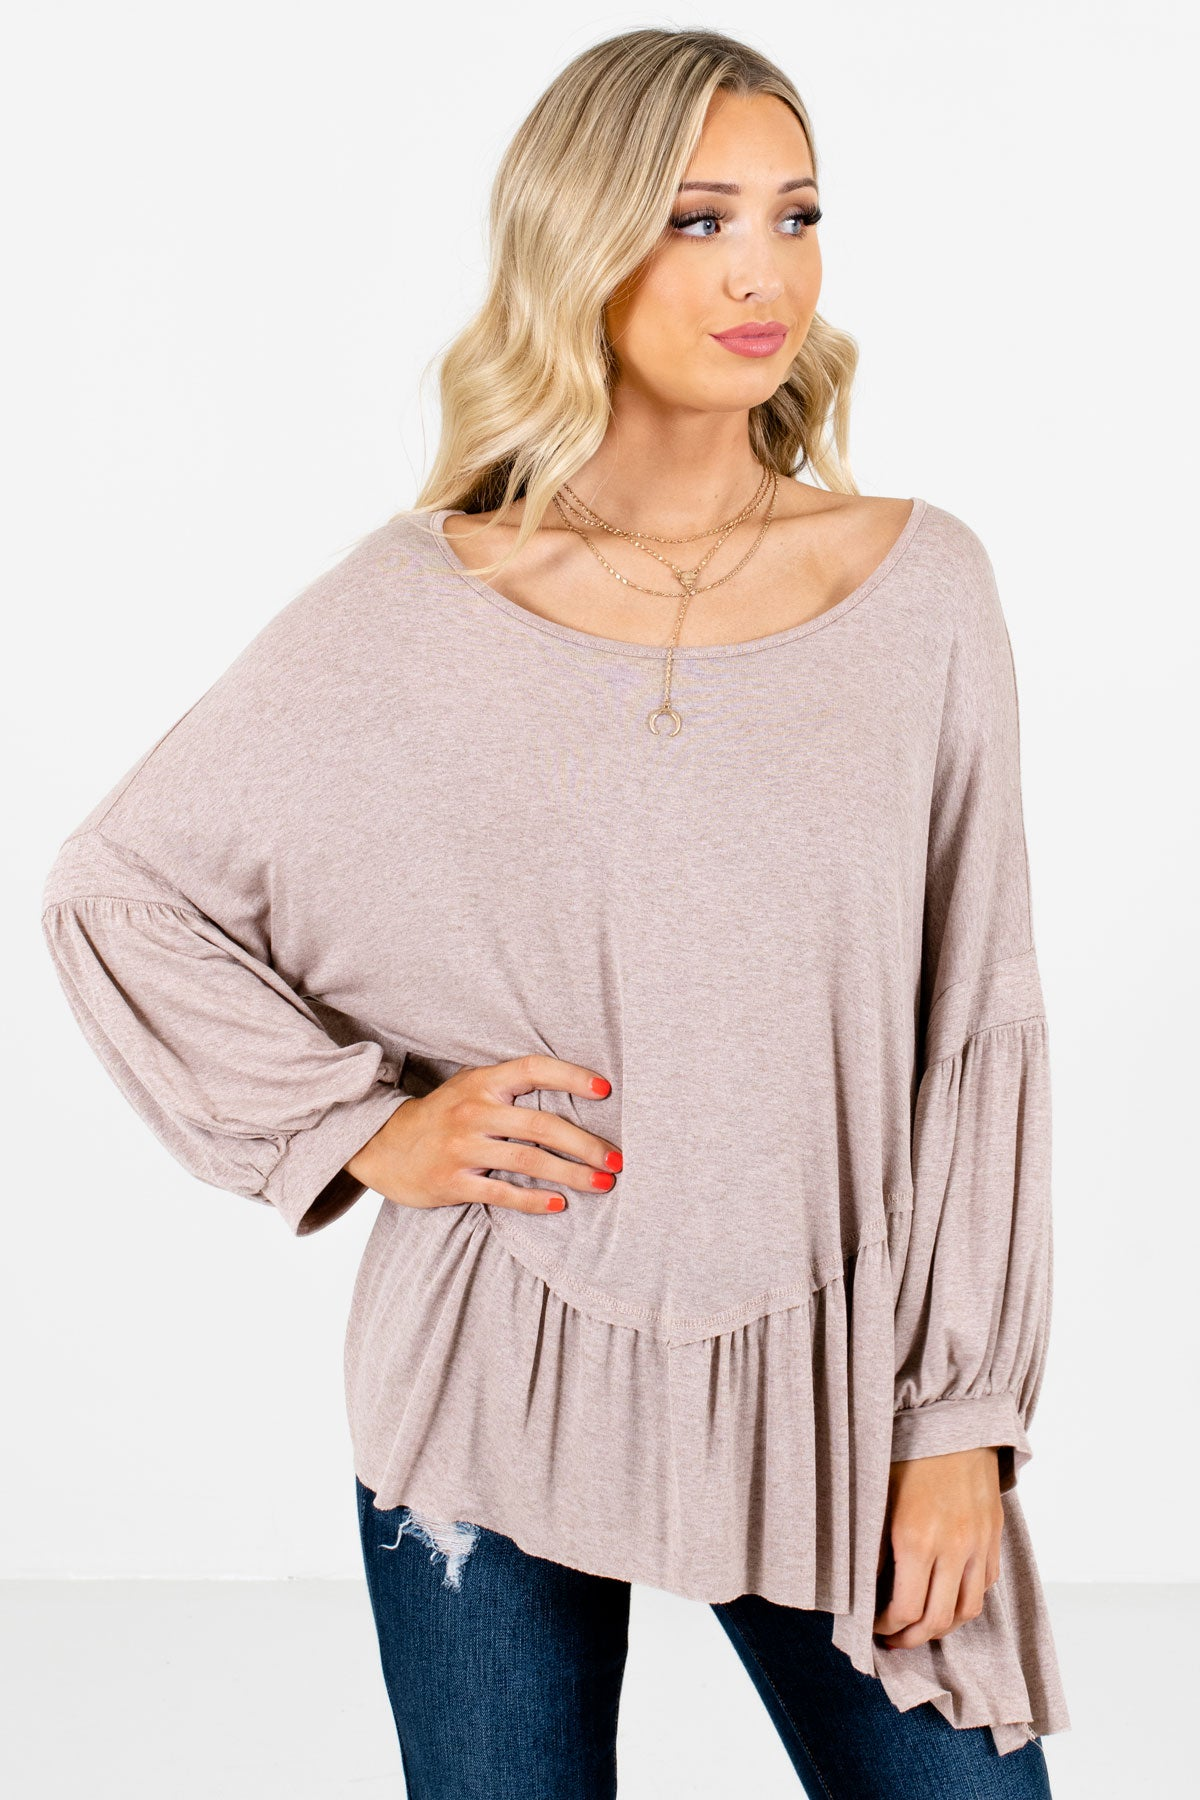 Taupe Brown Oversized Style Boutique Tops for Women